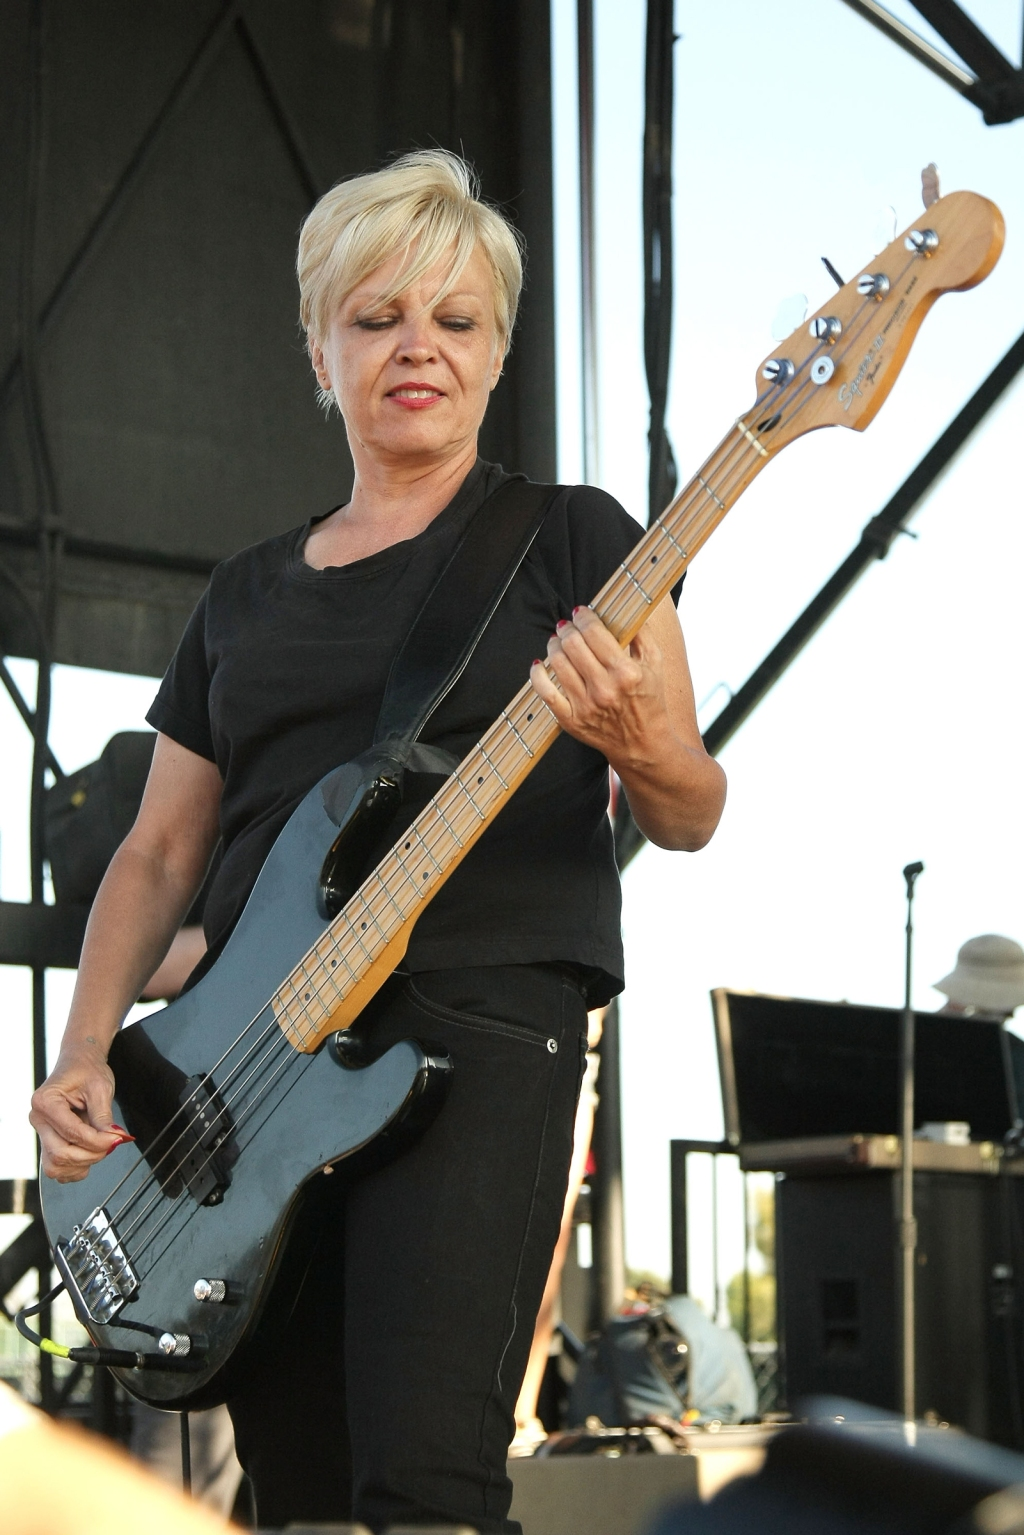 Lorna Doom of The Germs performs at the 2008 Vans Warped Tour in Los Angeles, California.